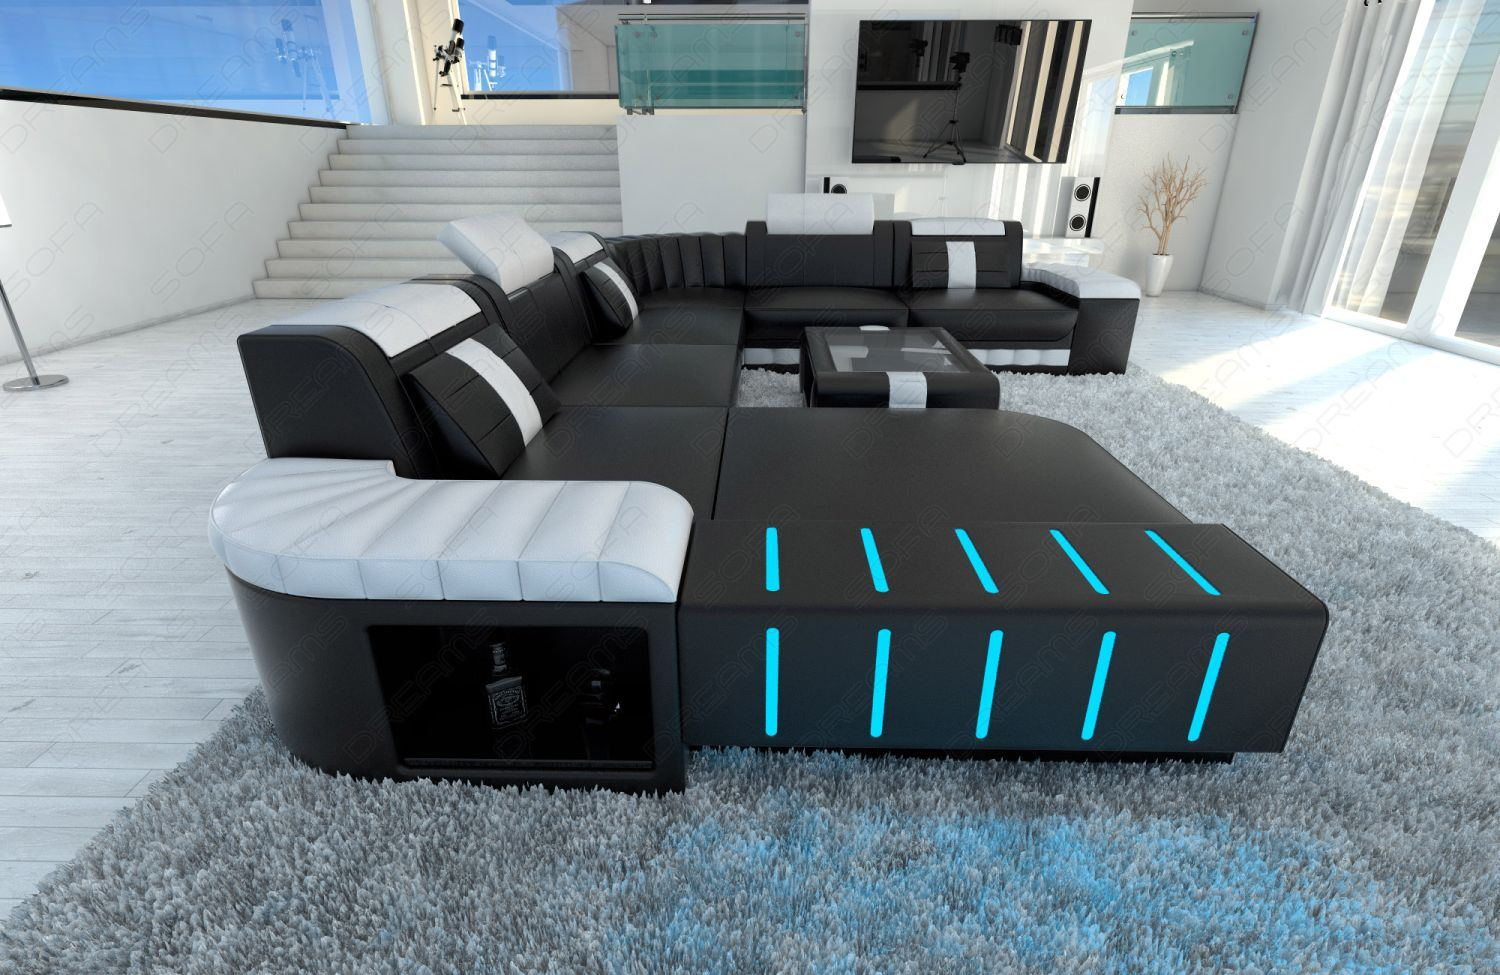 Led Couch Sofa Bellagio Xxl Leather Sofa Led Lighting Colour